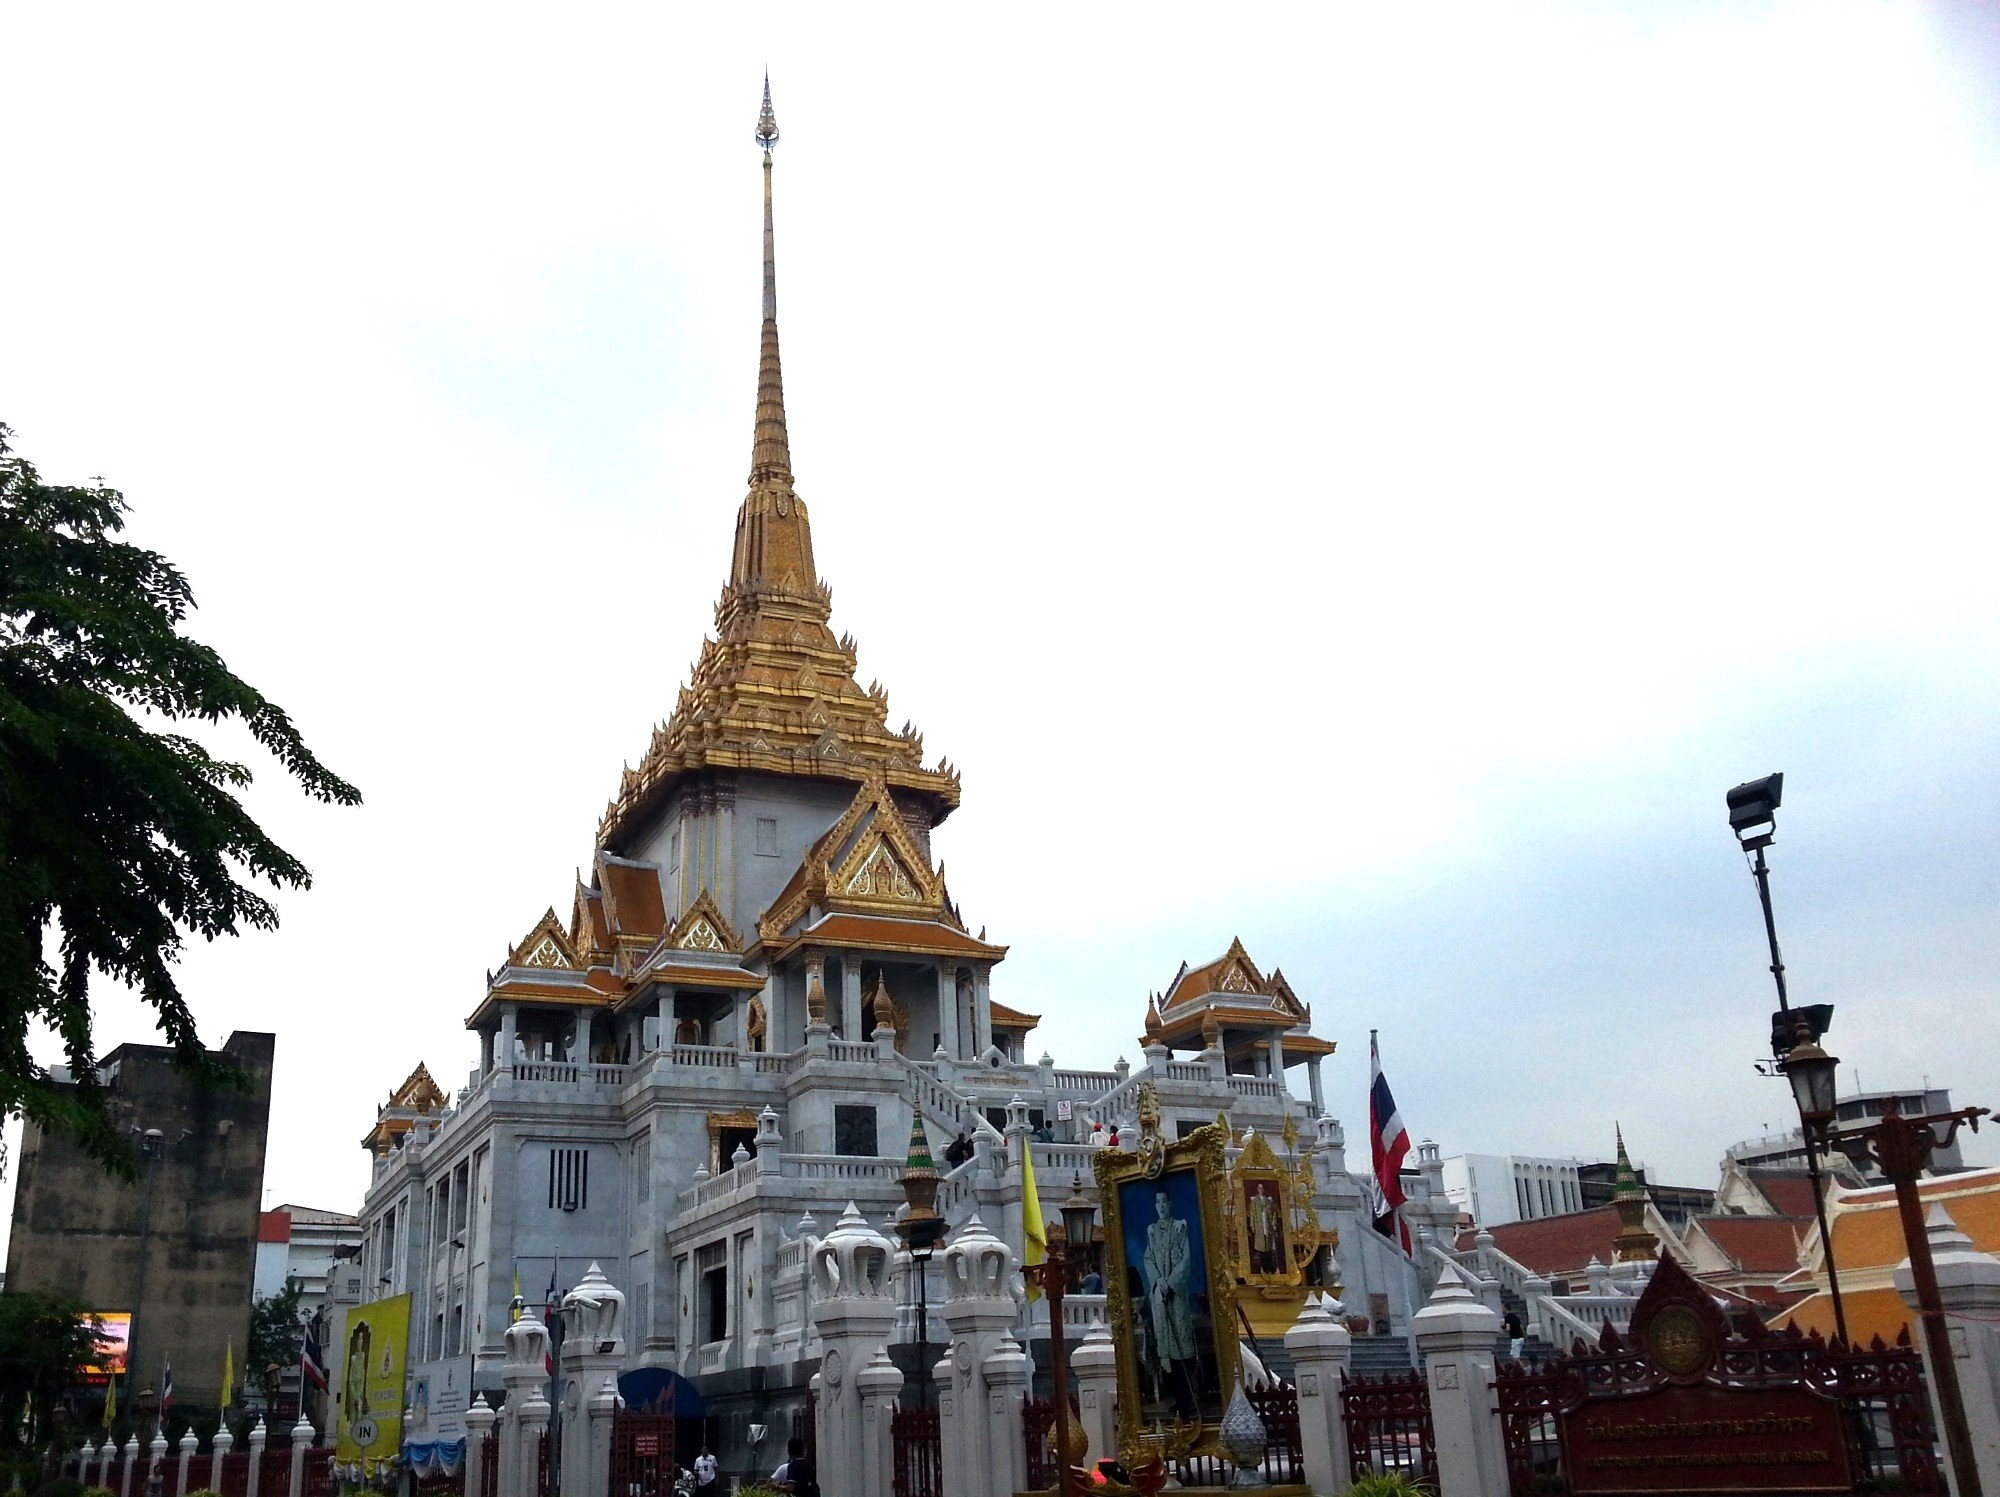 Wat Traimit in Bangkok